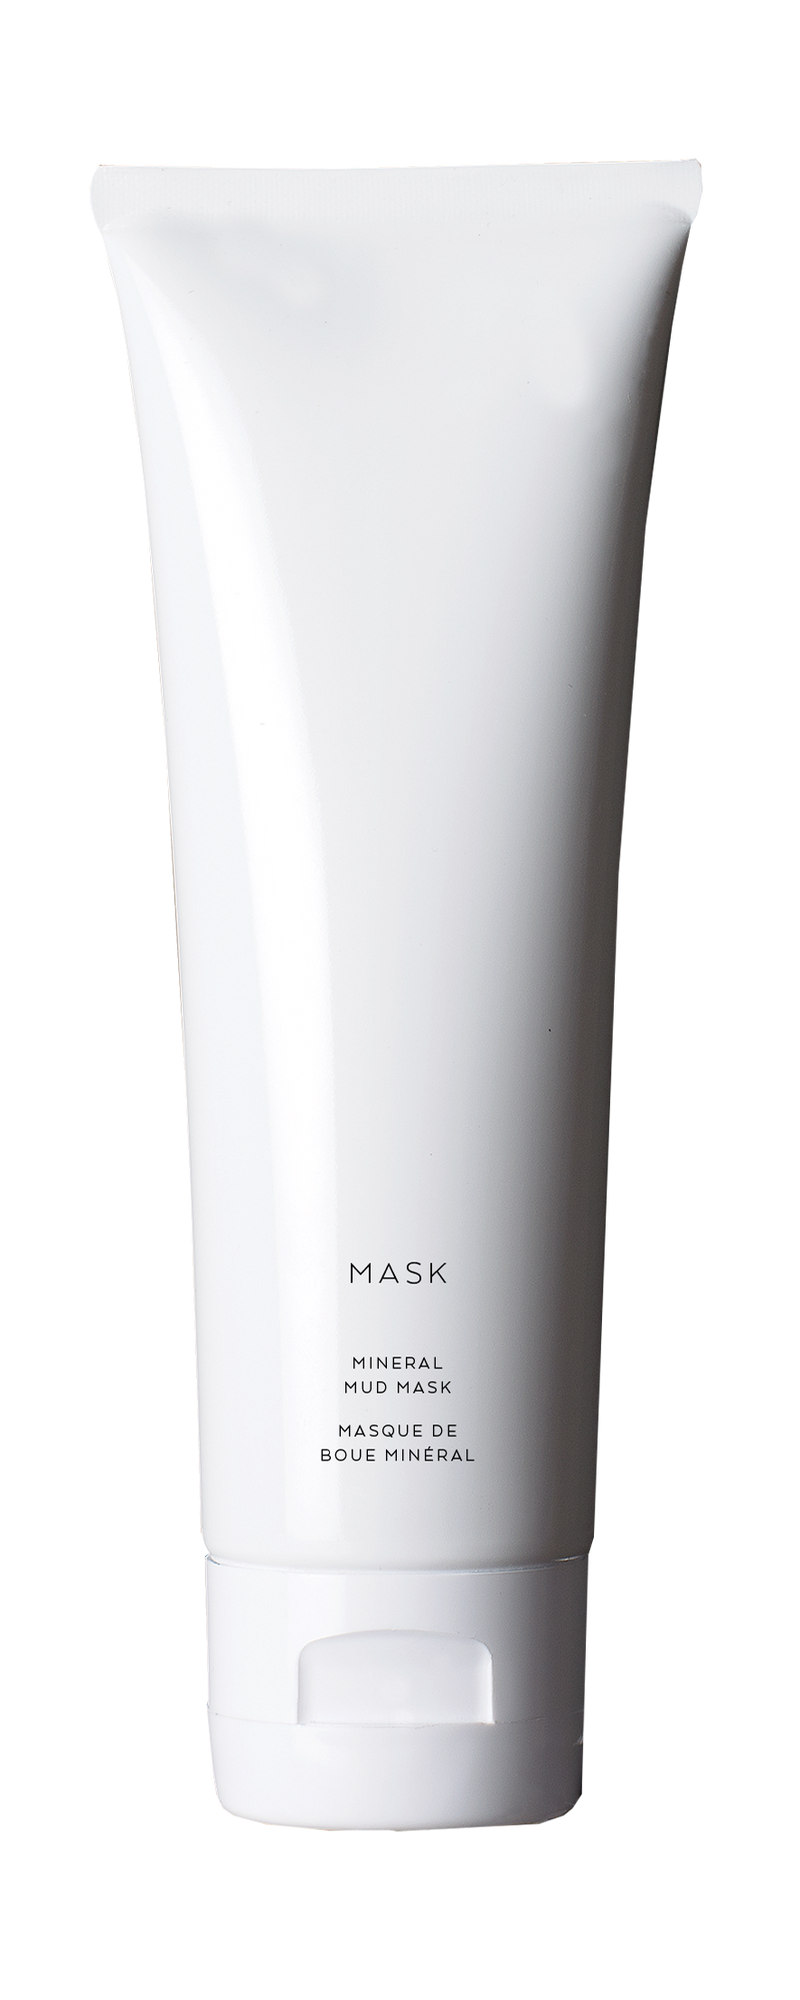 ★SALE★ MASK - MINERAL MUD MASK